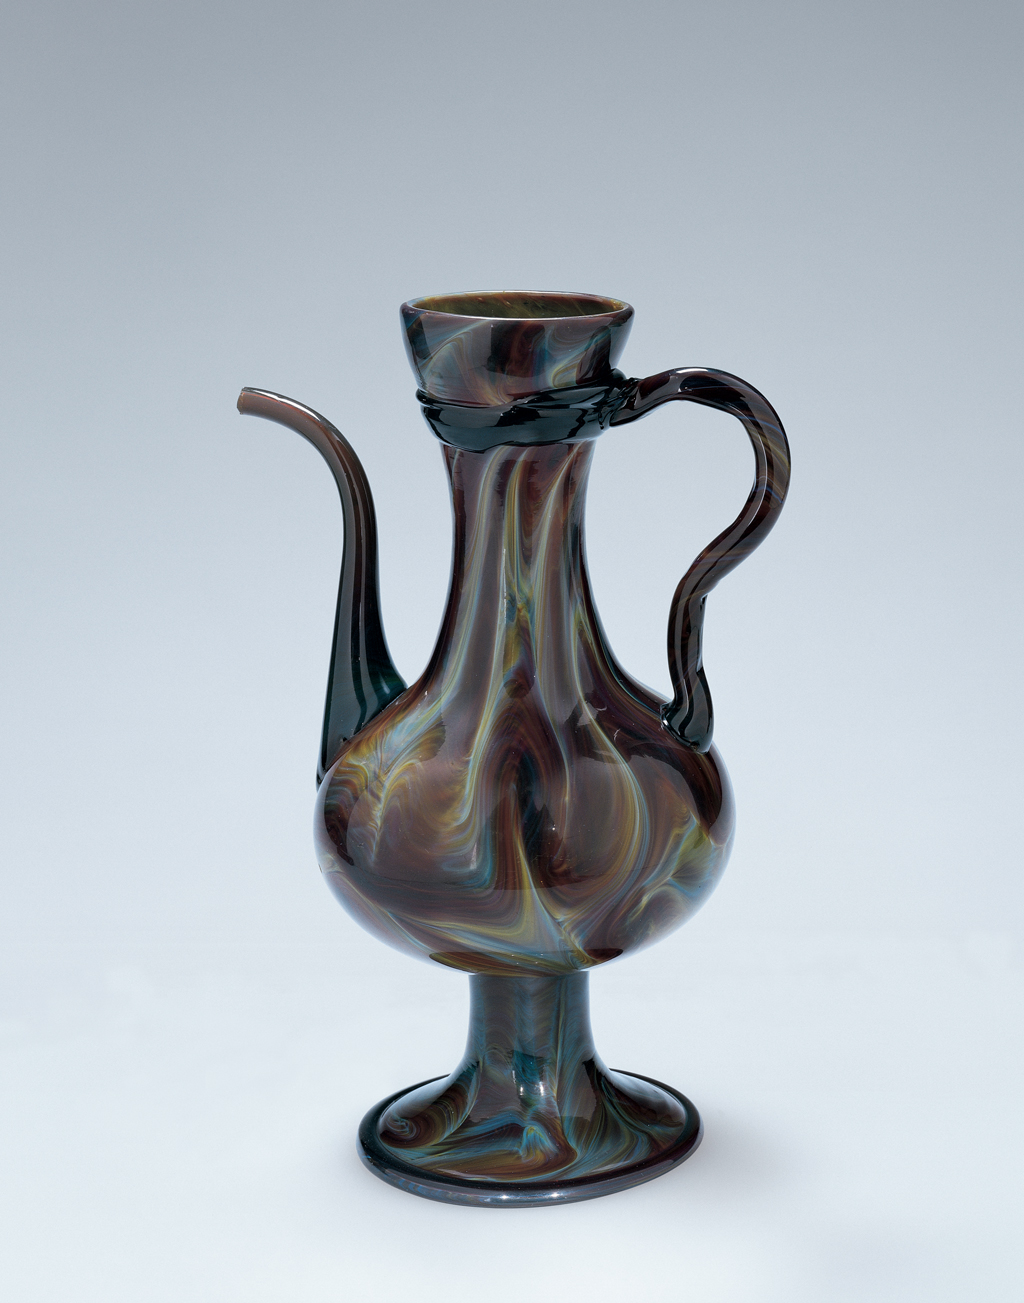 FIG. 48. Ewer, calcedonio glass. Venice, about 1500–1525. H. 30 cm, D. (rim) 8 cm. The Corning Museum of Glass (2001.3.56, gift of Robert and Deborah Truitt).